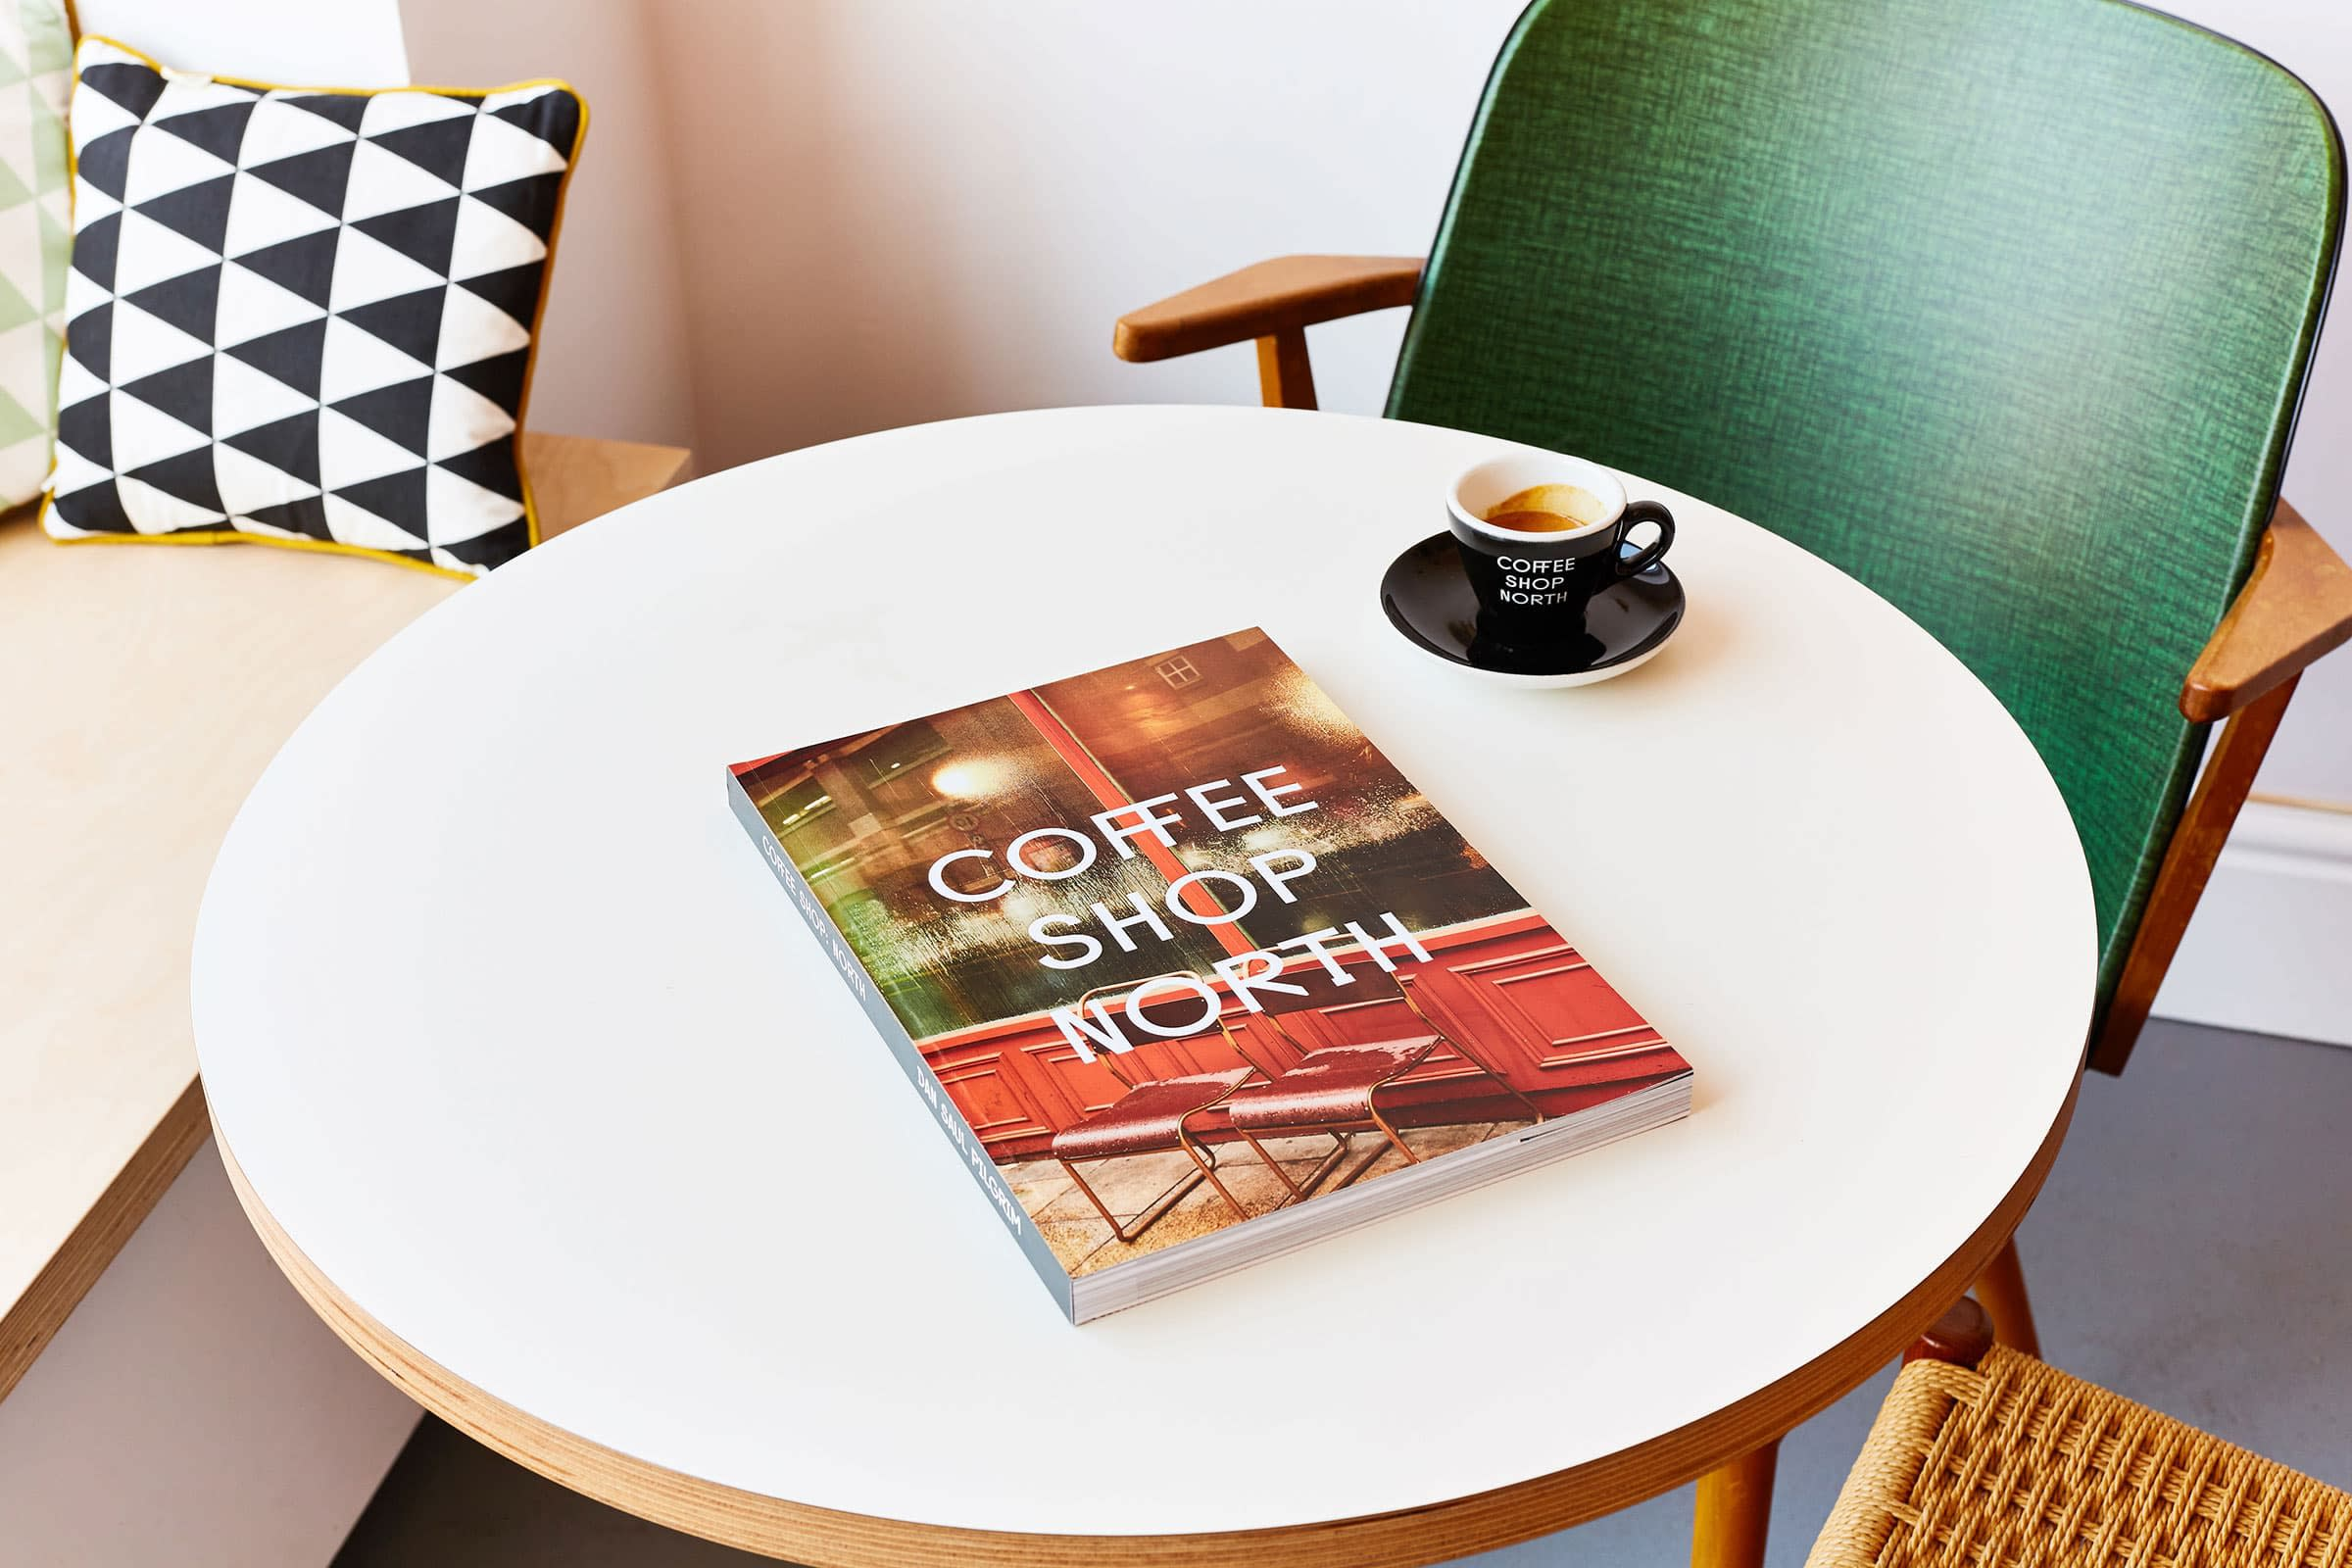 saul studio — COFFEE SHOP: NORTH